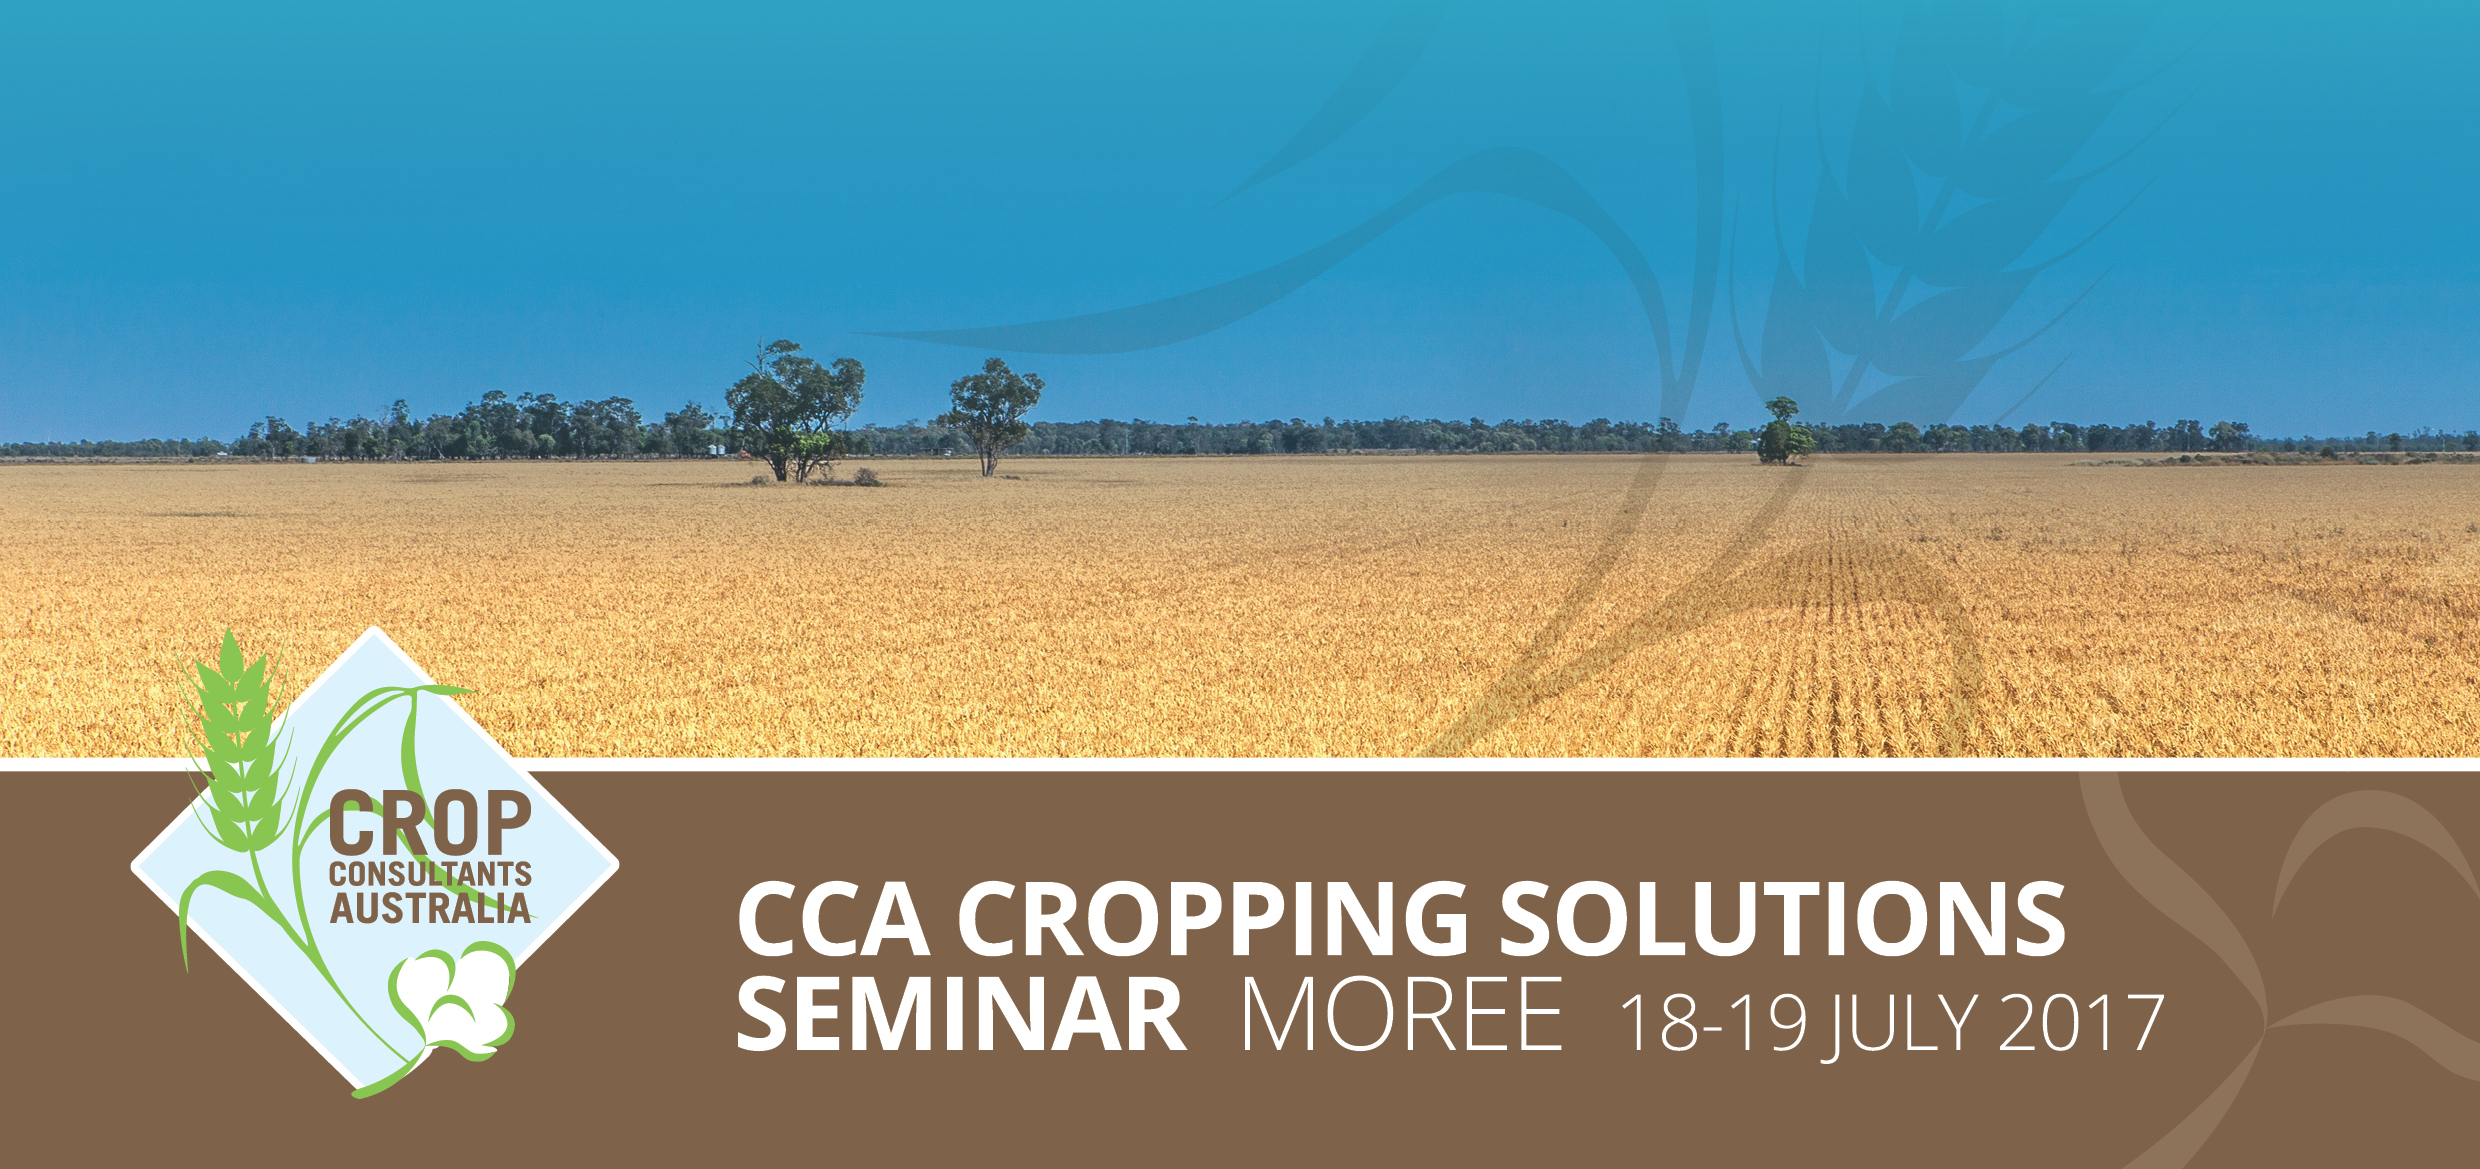 CCA Cropping Solutions Seminar  18-19 July  2017